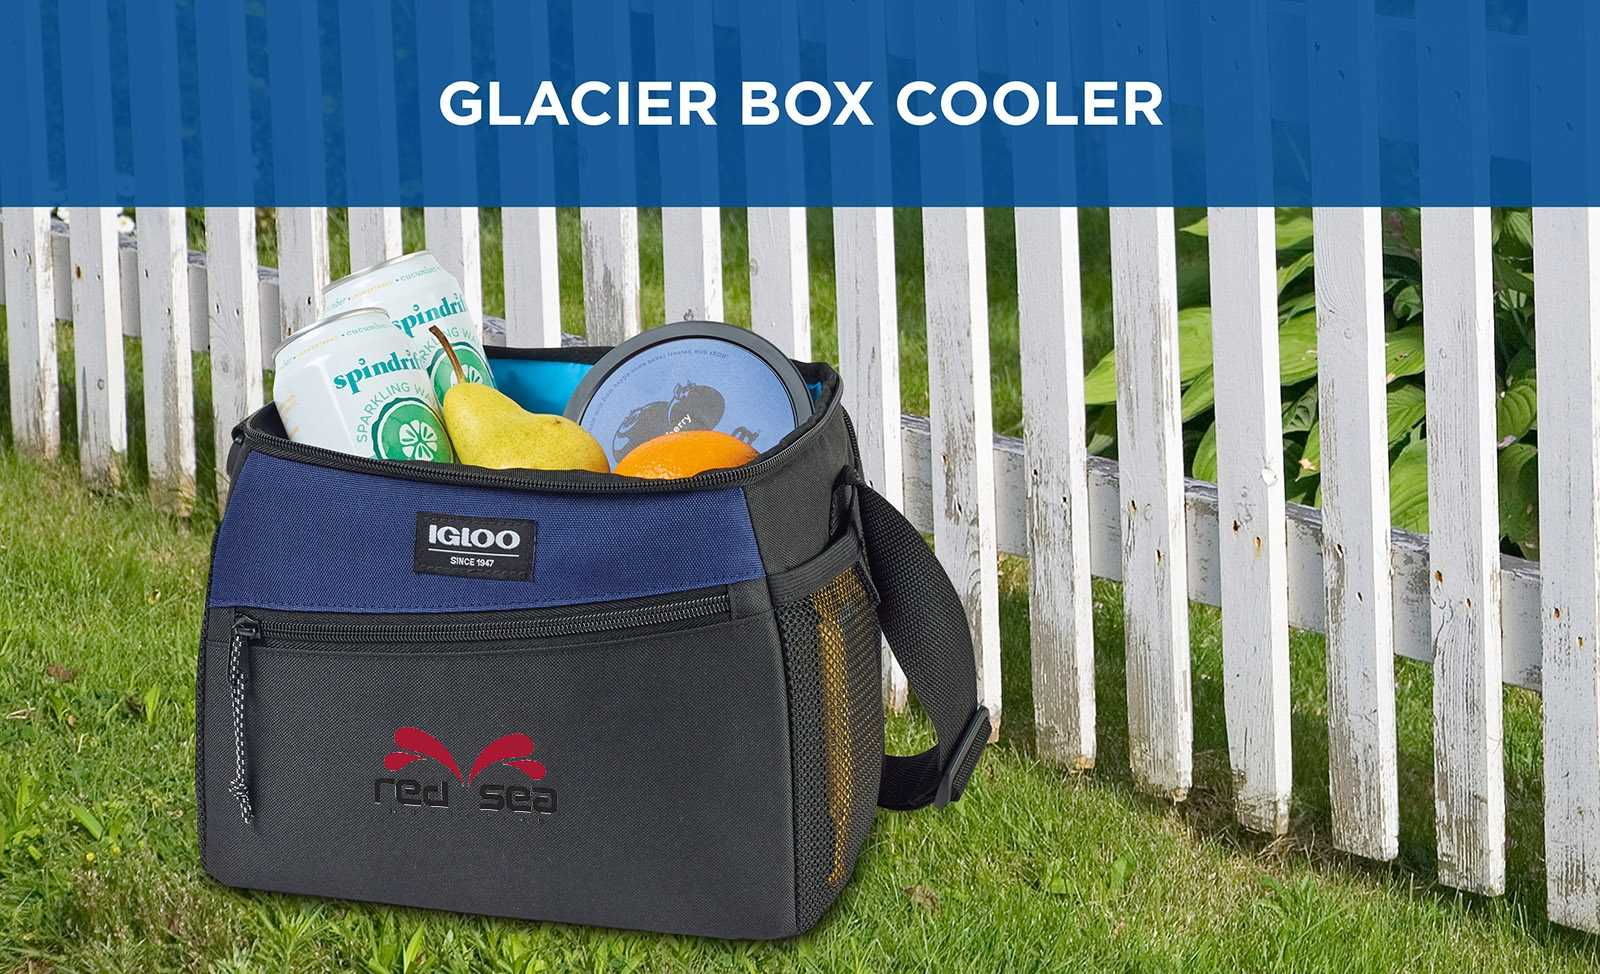 Glacier Box Cooler AIM